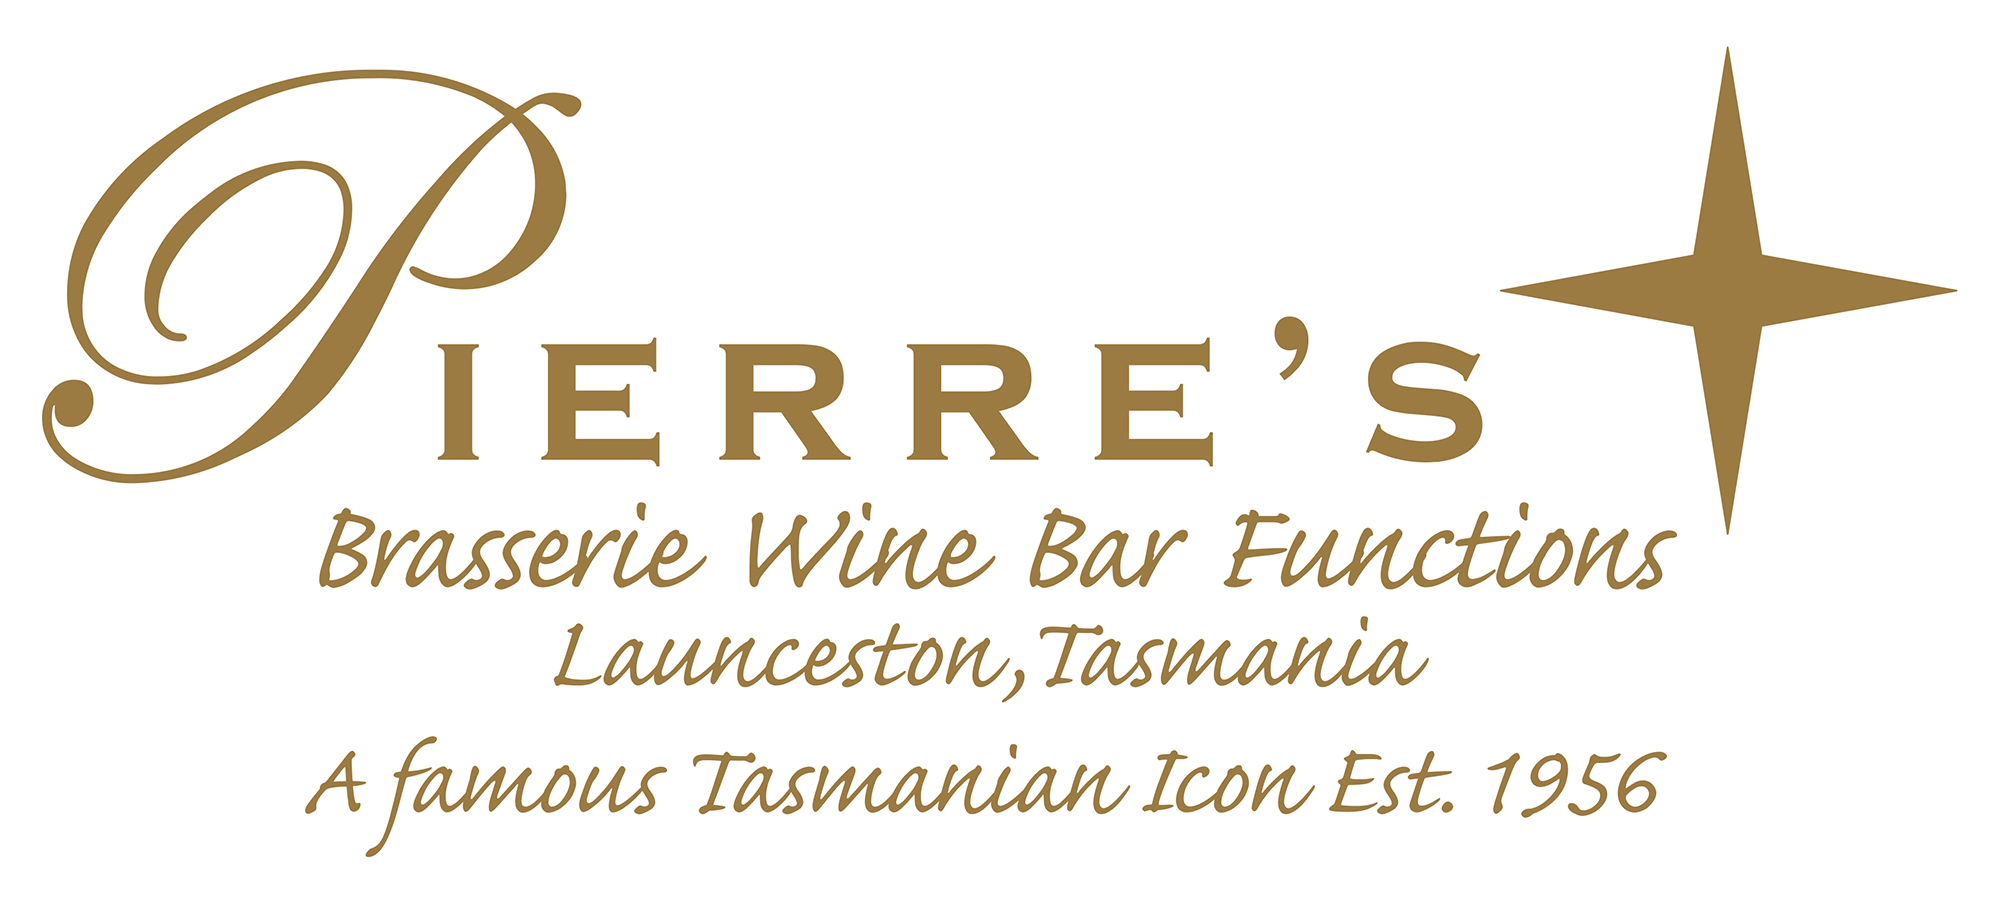 Pierre's Launceston